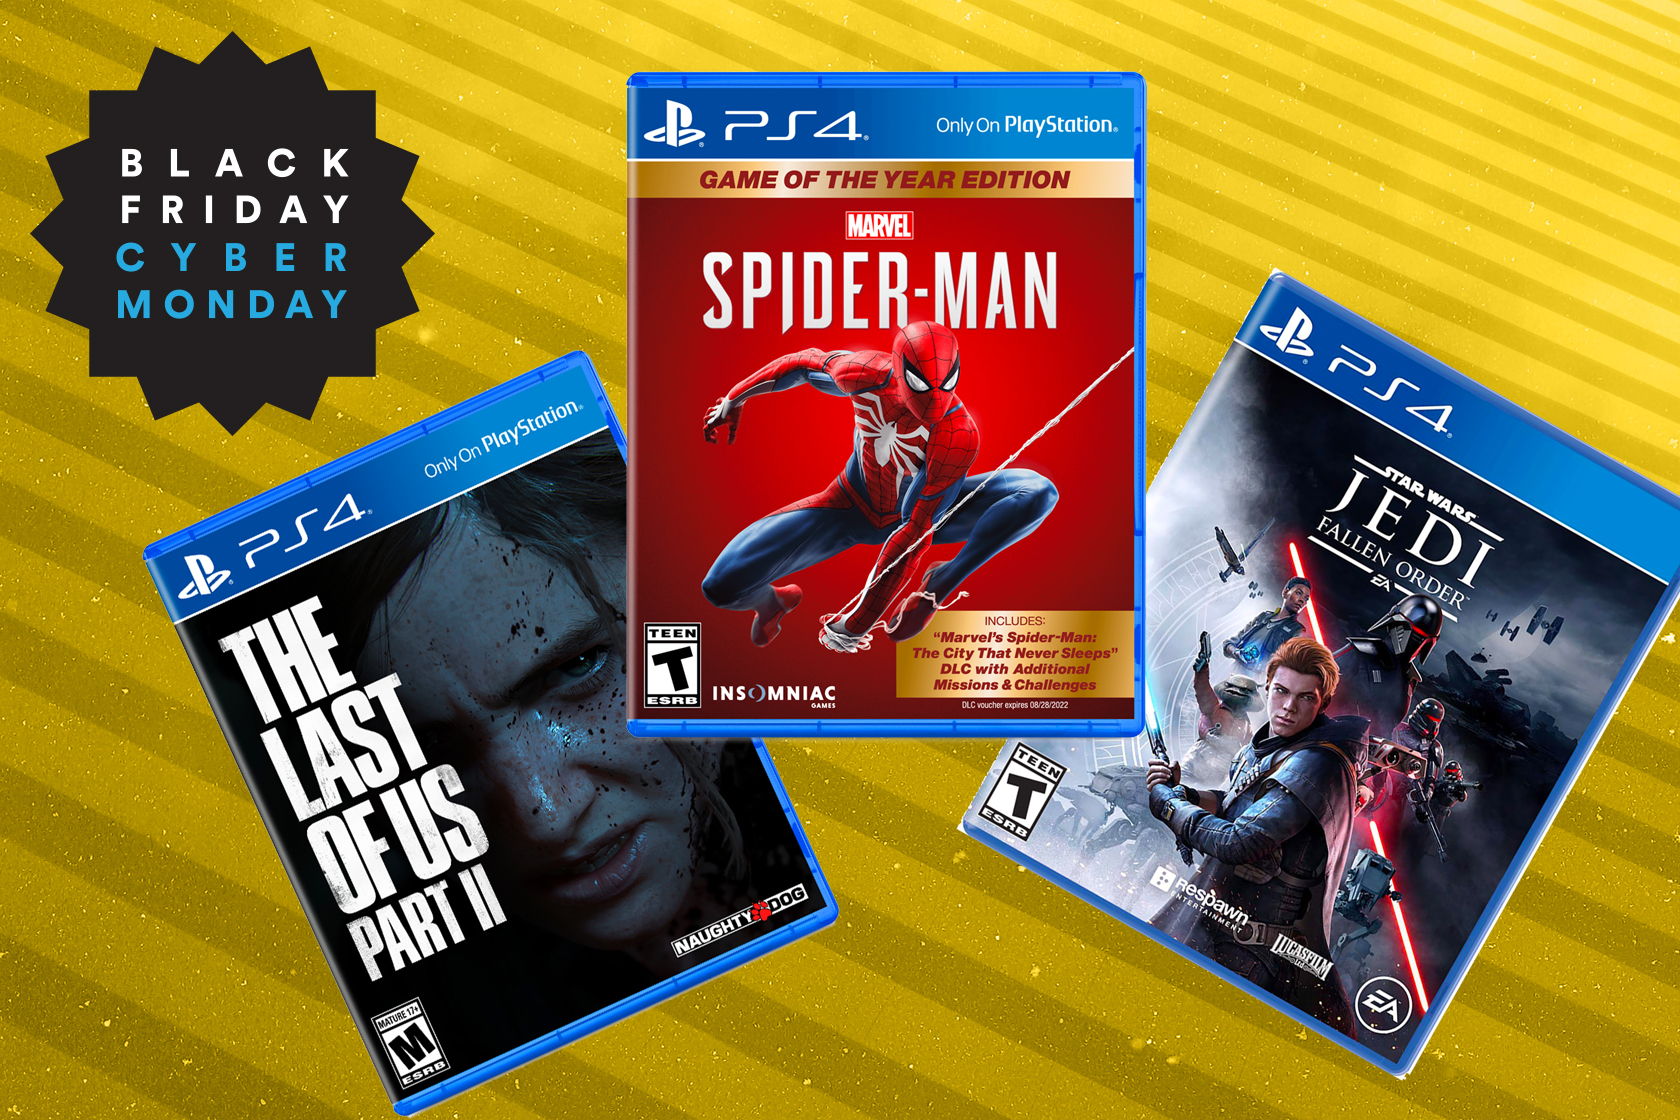 PlayStation 4 games are down to $15 for Black Friday at Walmart